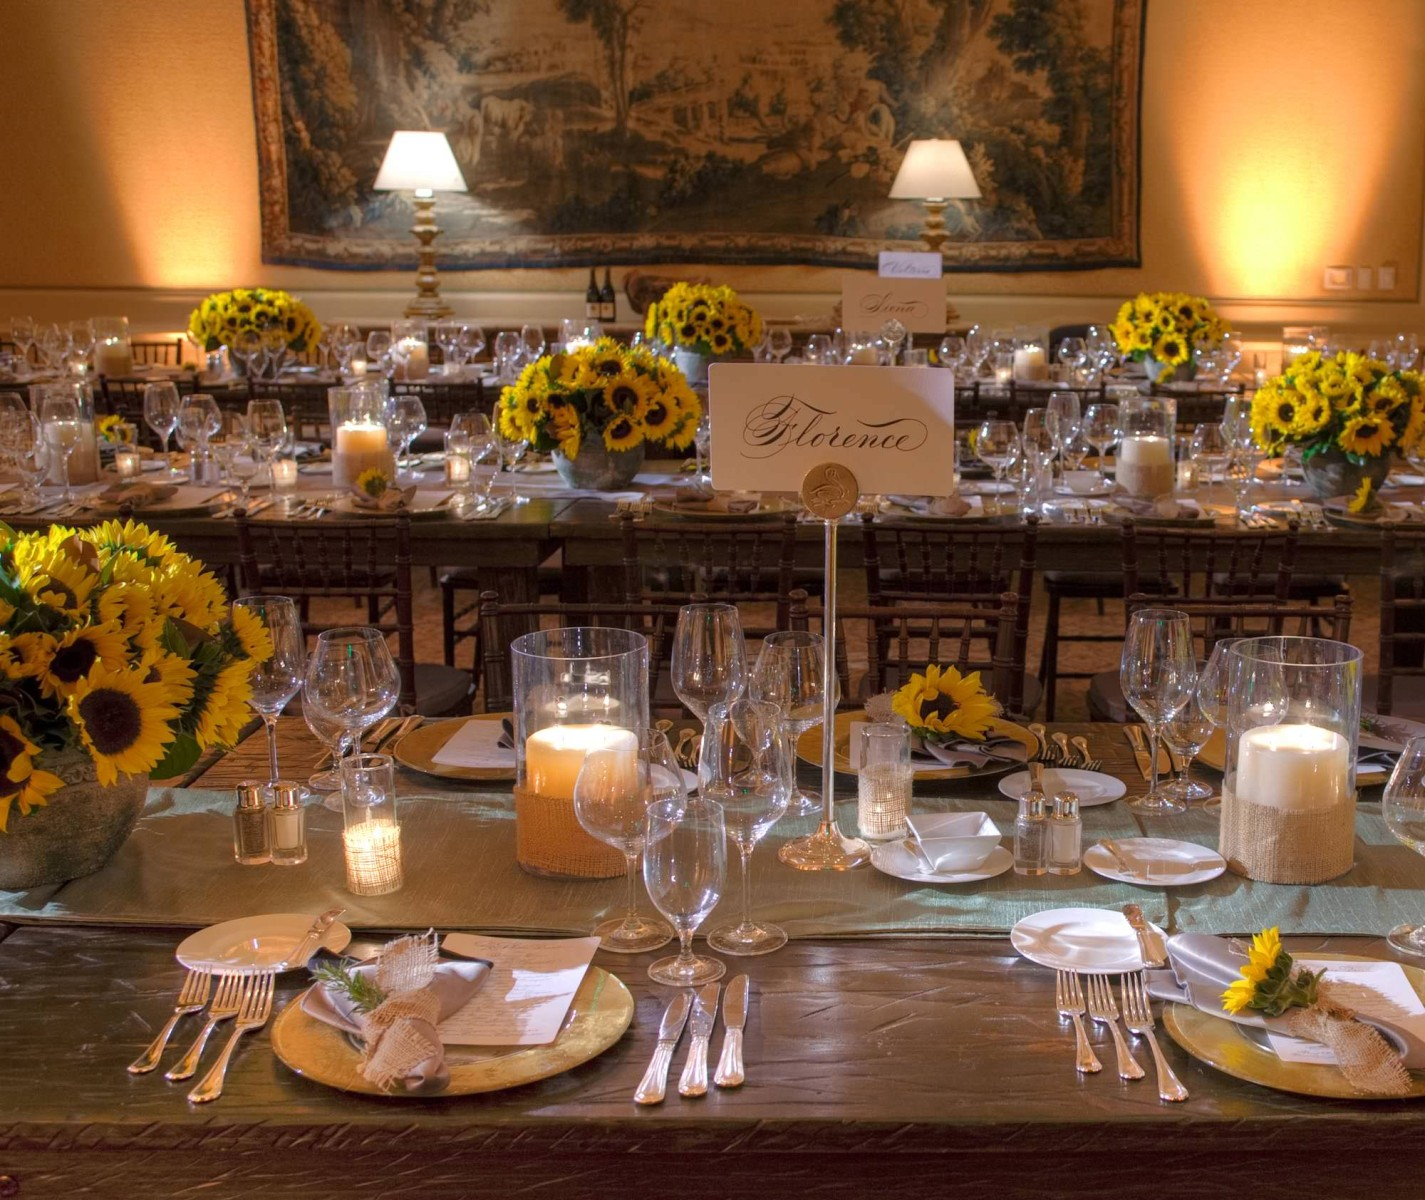 nisies-enchanted-florist-orange-county-Sunflowers-Cosentino-Rehearsal-Dinner-Pelican-Hill-Resort-event-7